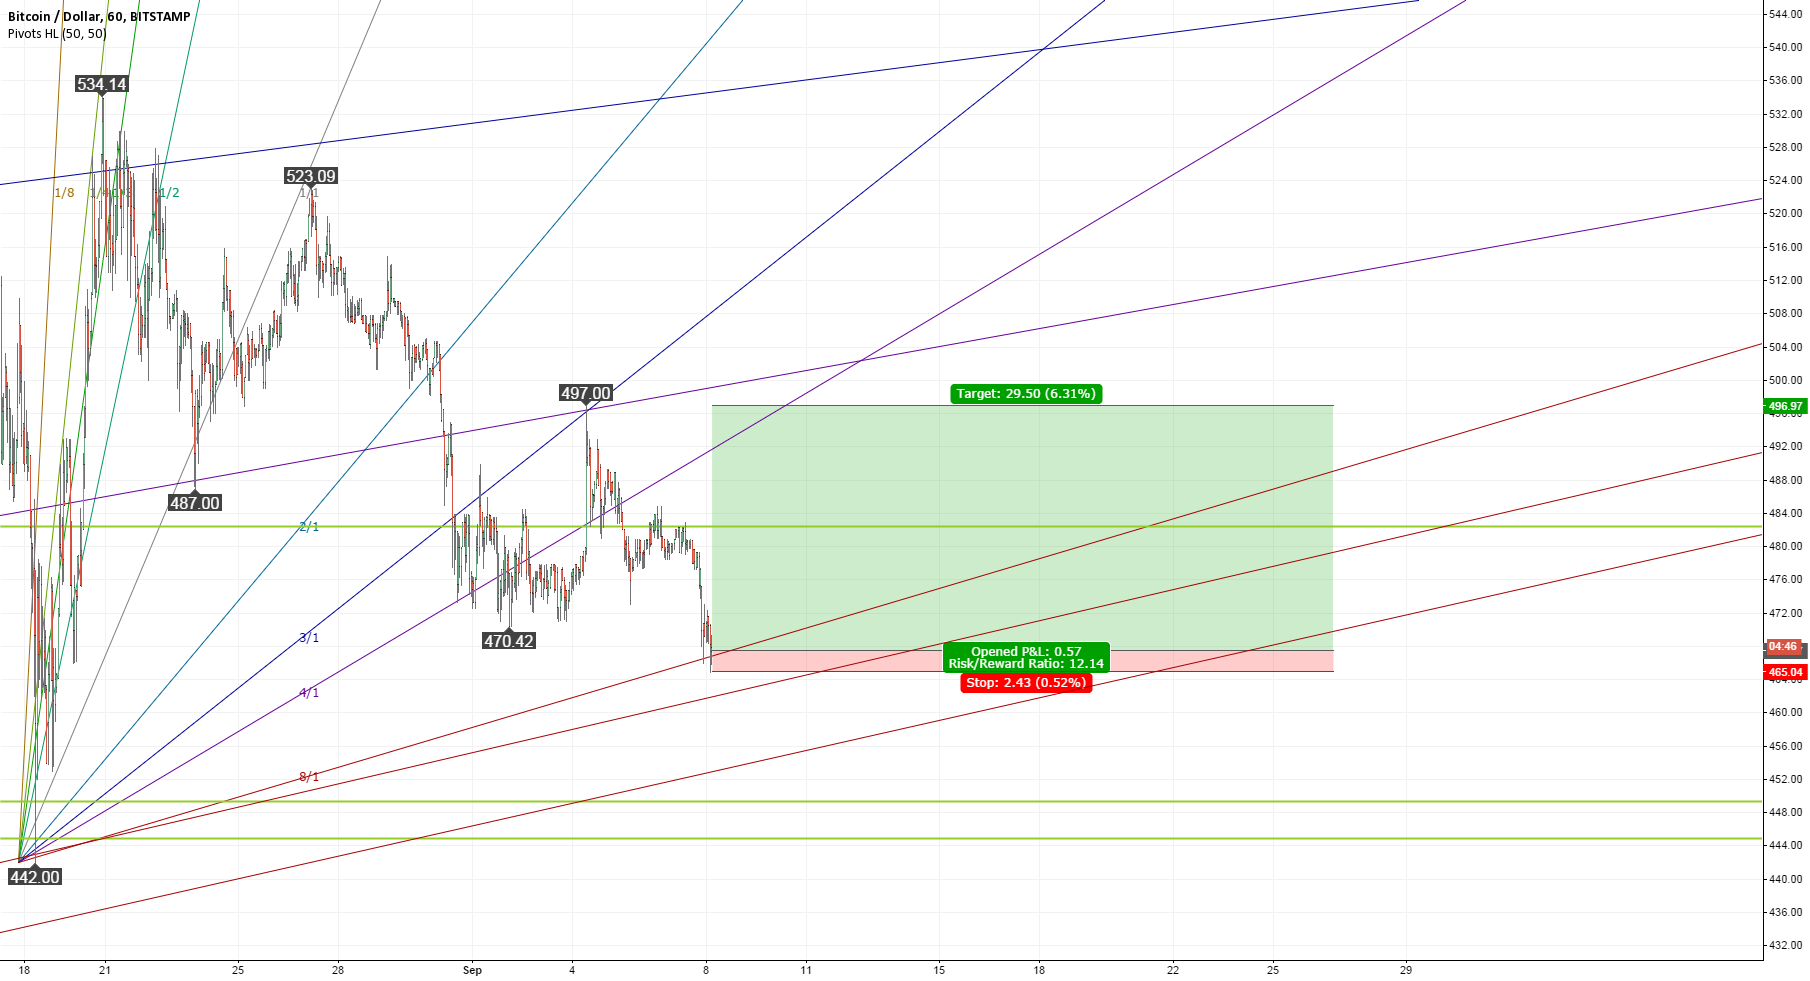 Short-term buying opportunity above 465 US Dollar